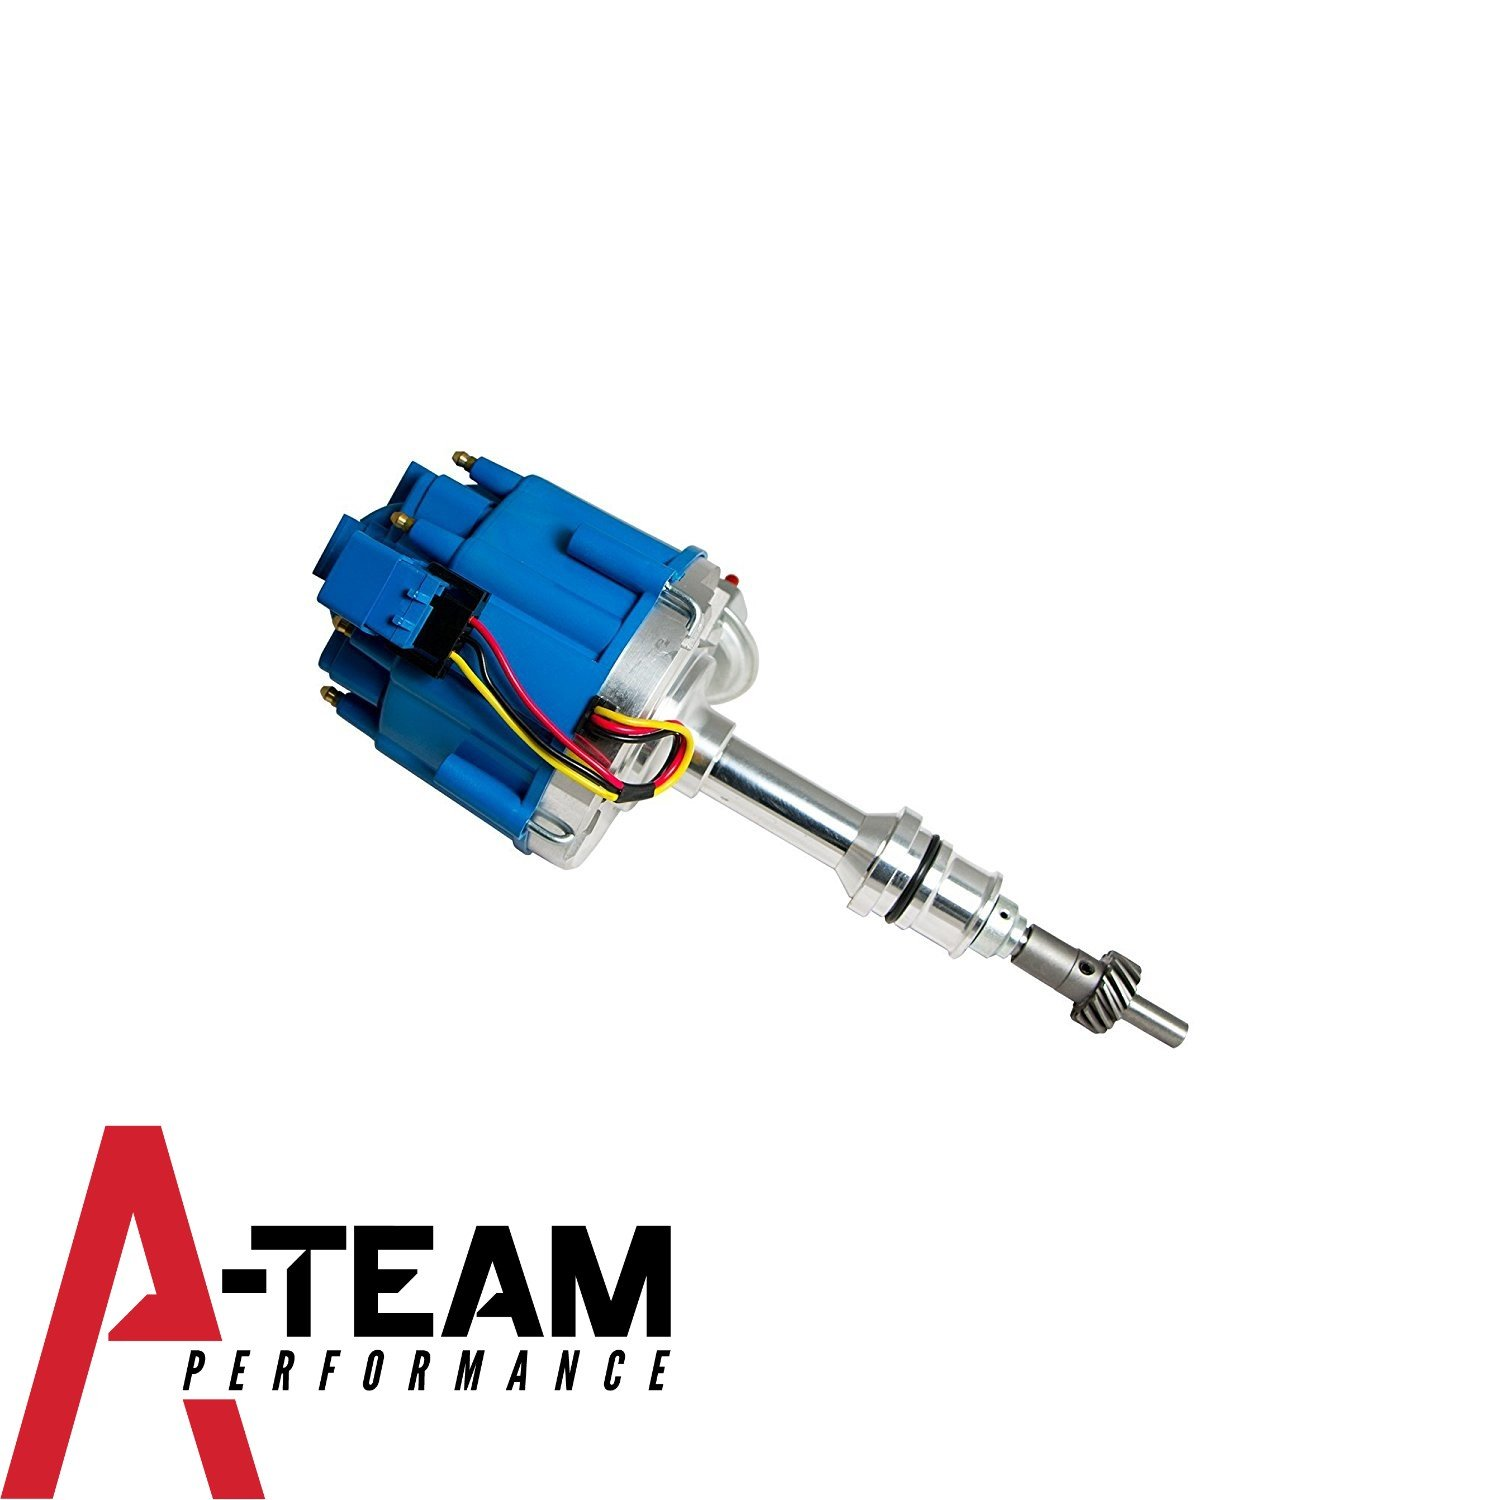 Amazon.com: A-Team Performance Small Block Ford 65K COIL HEI Complete  Distributor 260 289 302 5.0 1-Wire Instillation: Automotive